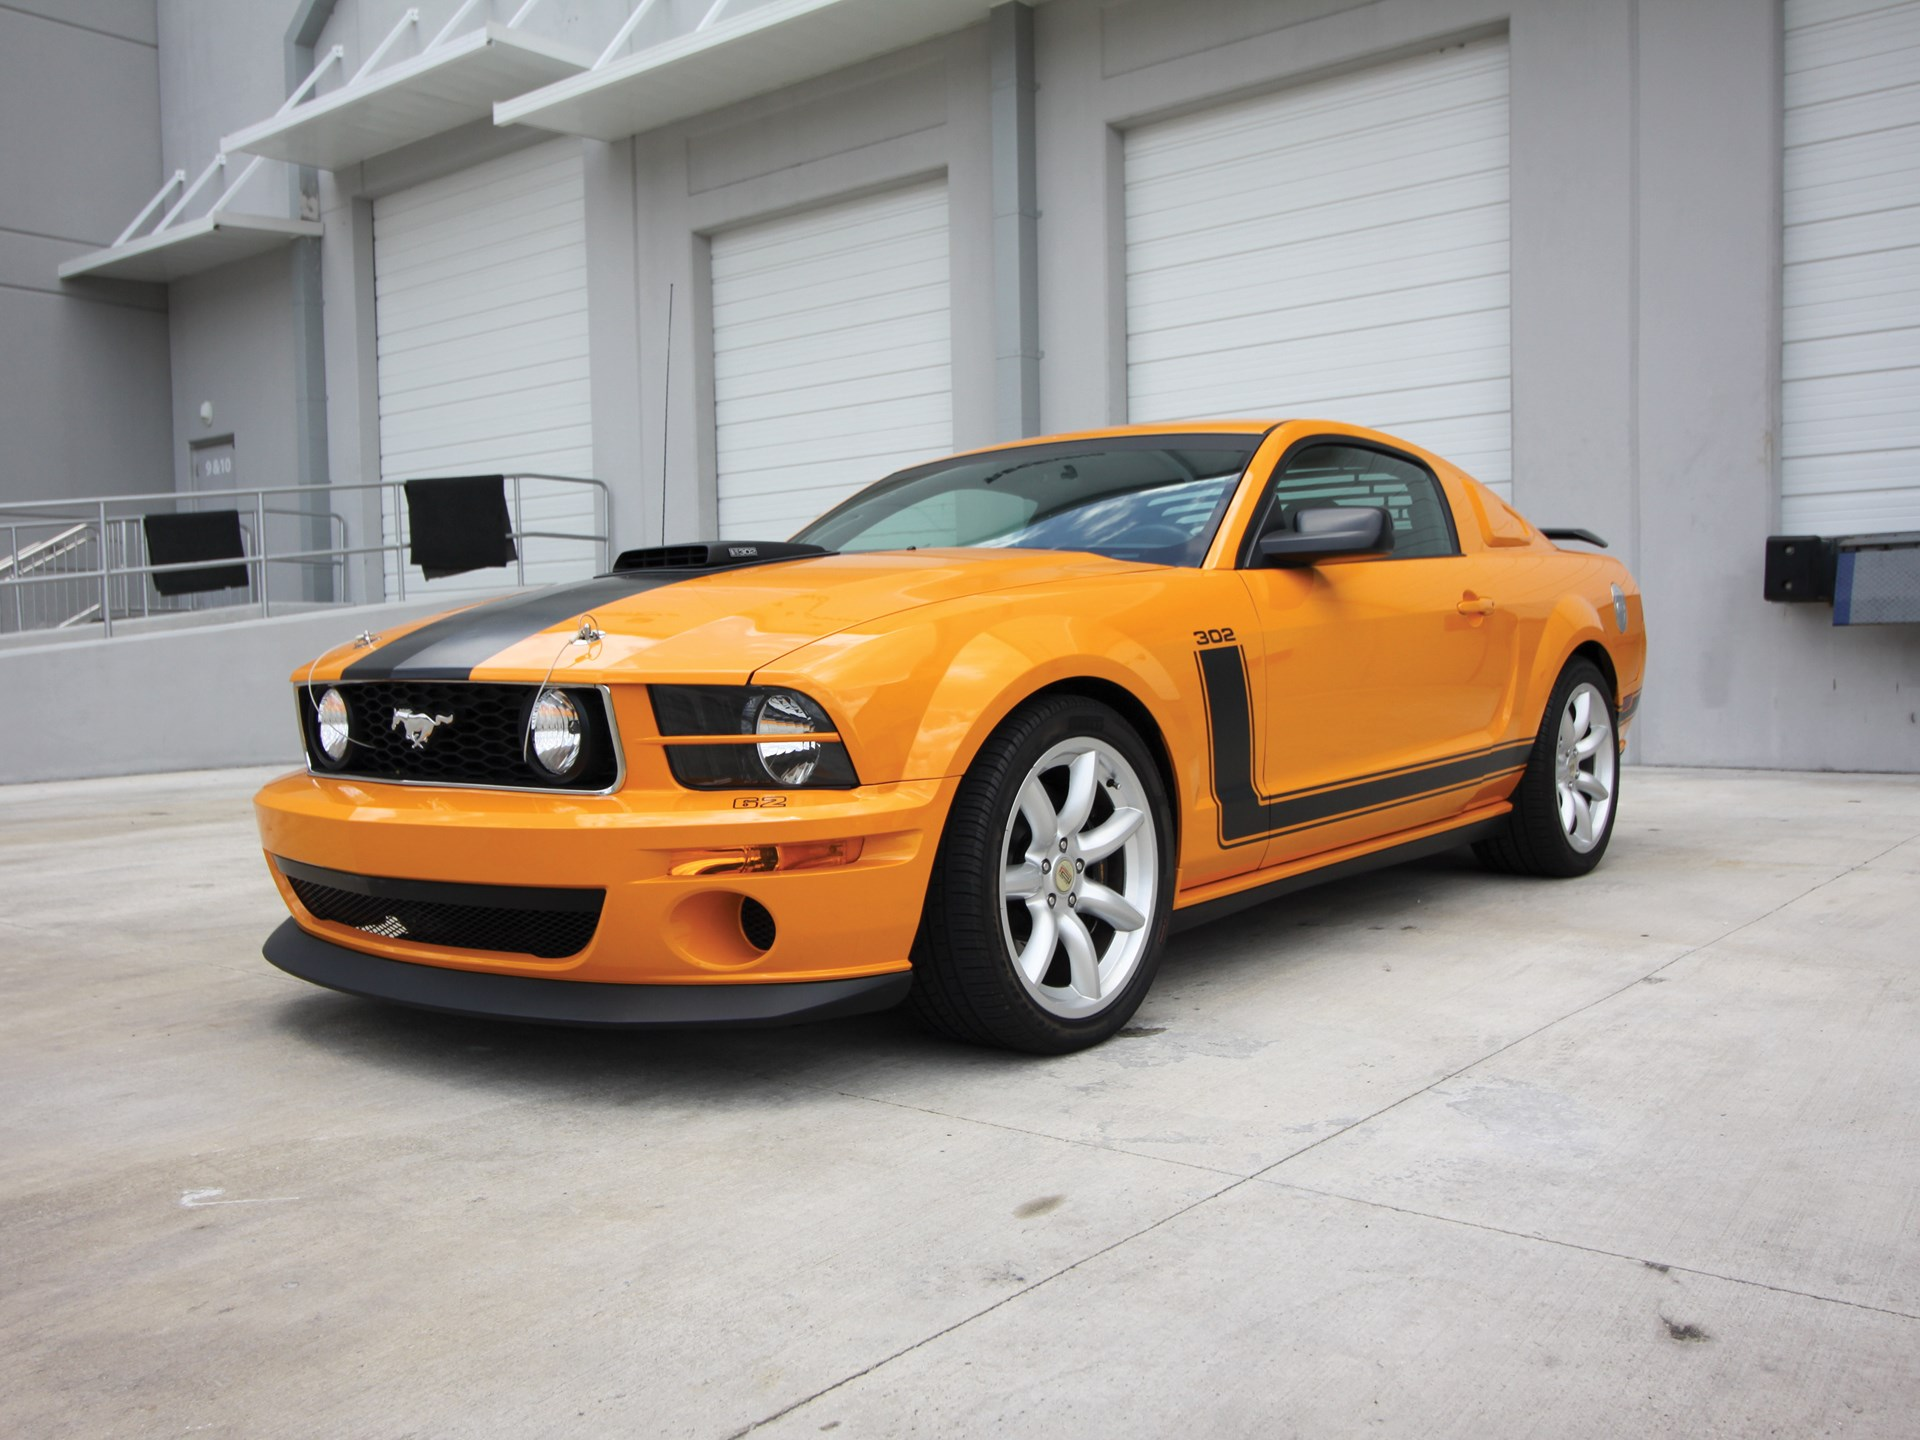 Rm sothebys 2007 ford mustang saleen boss 302 parnelli jones